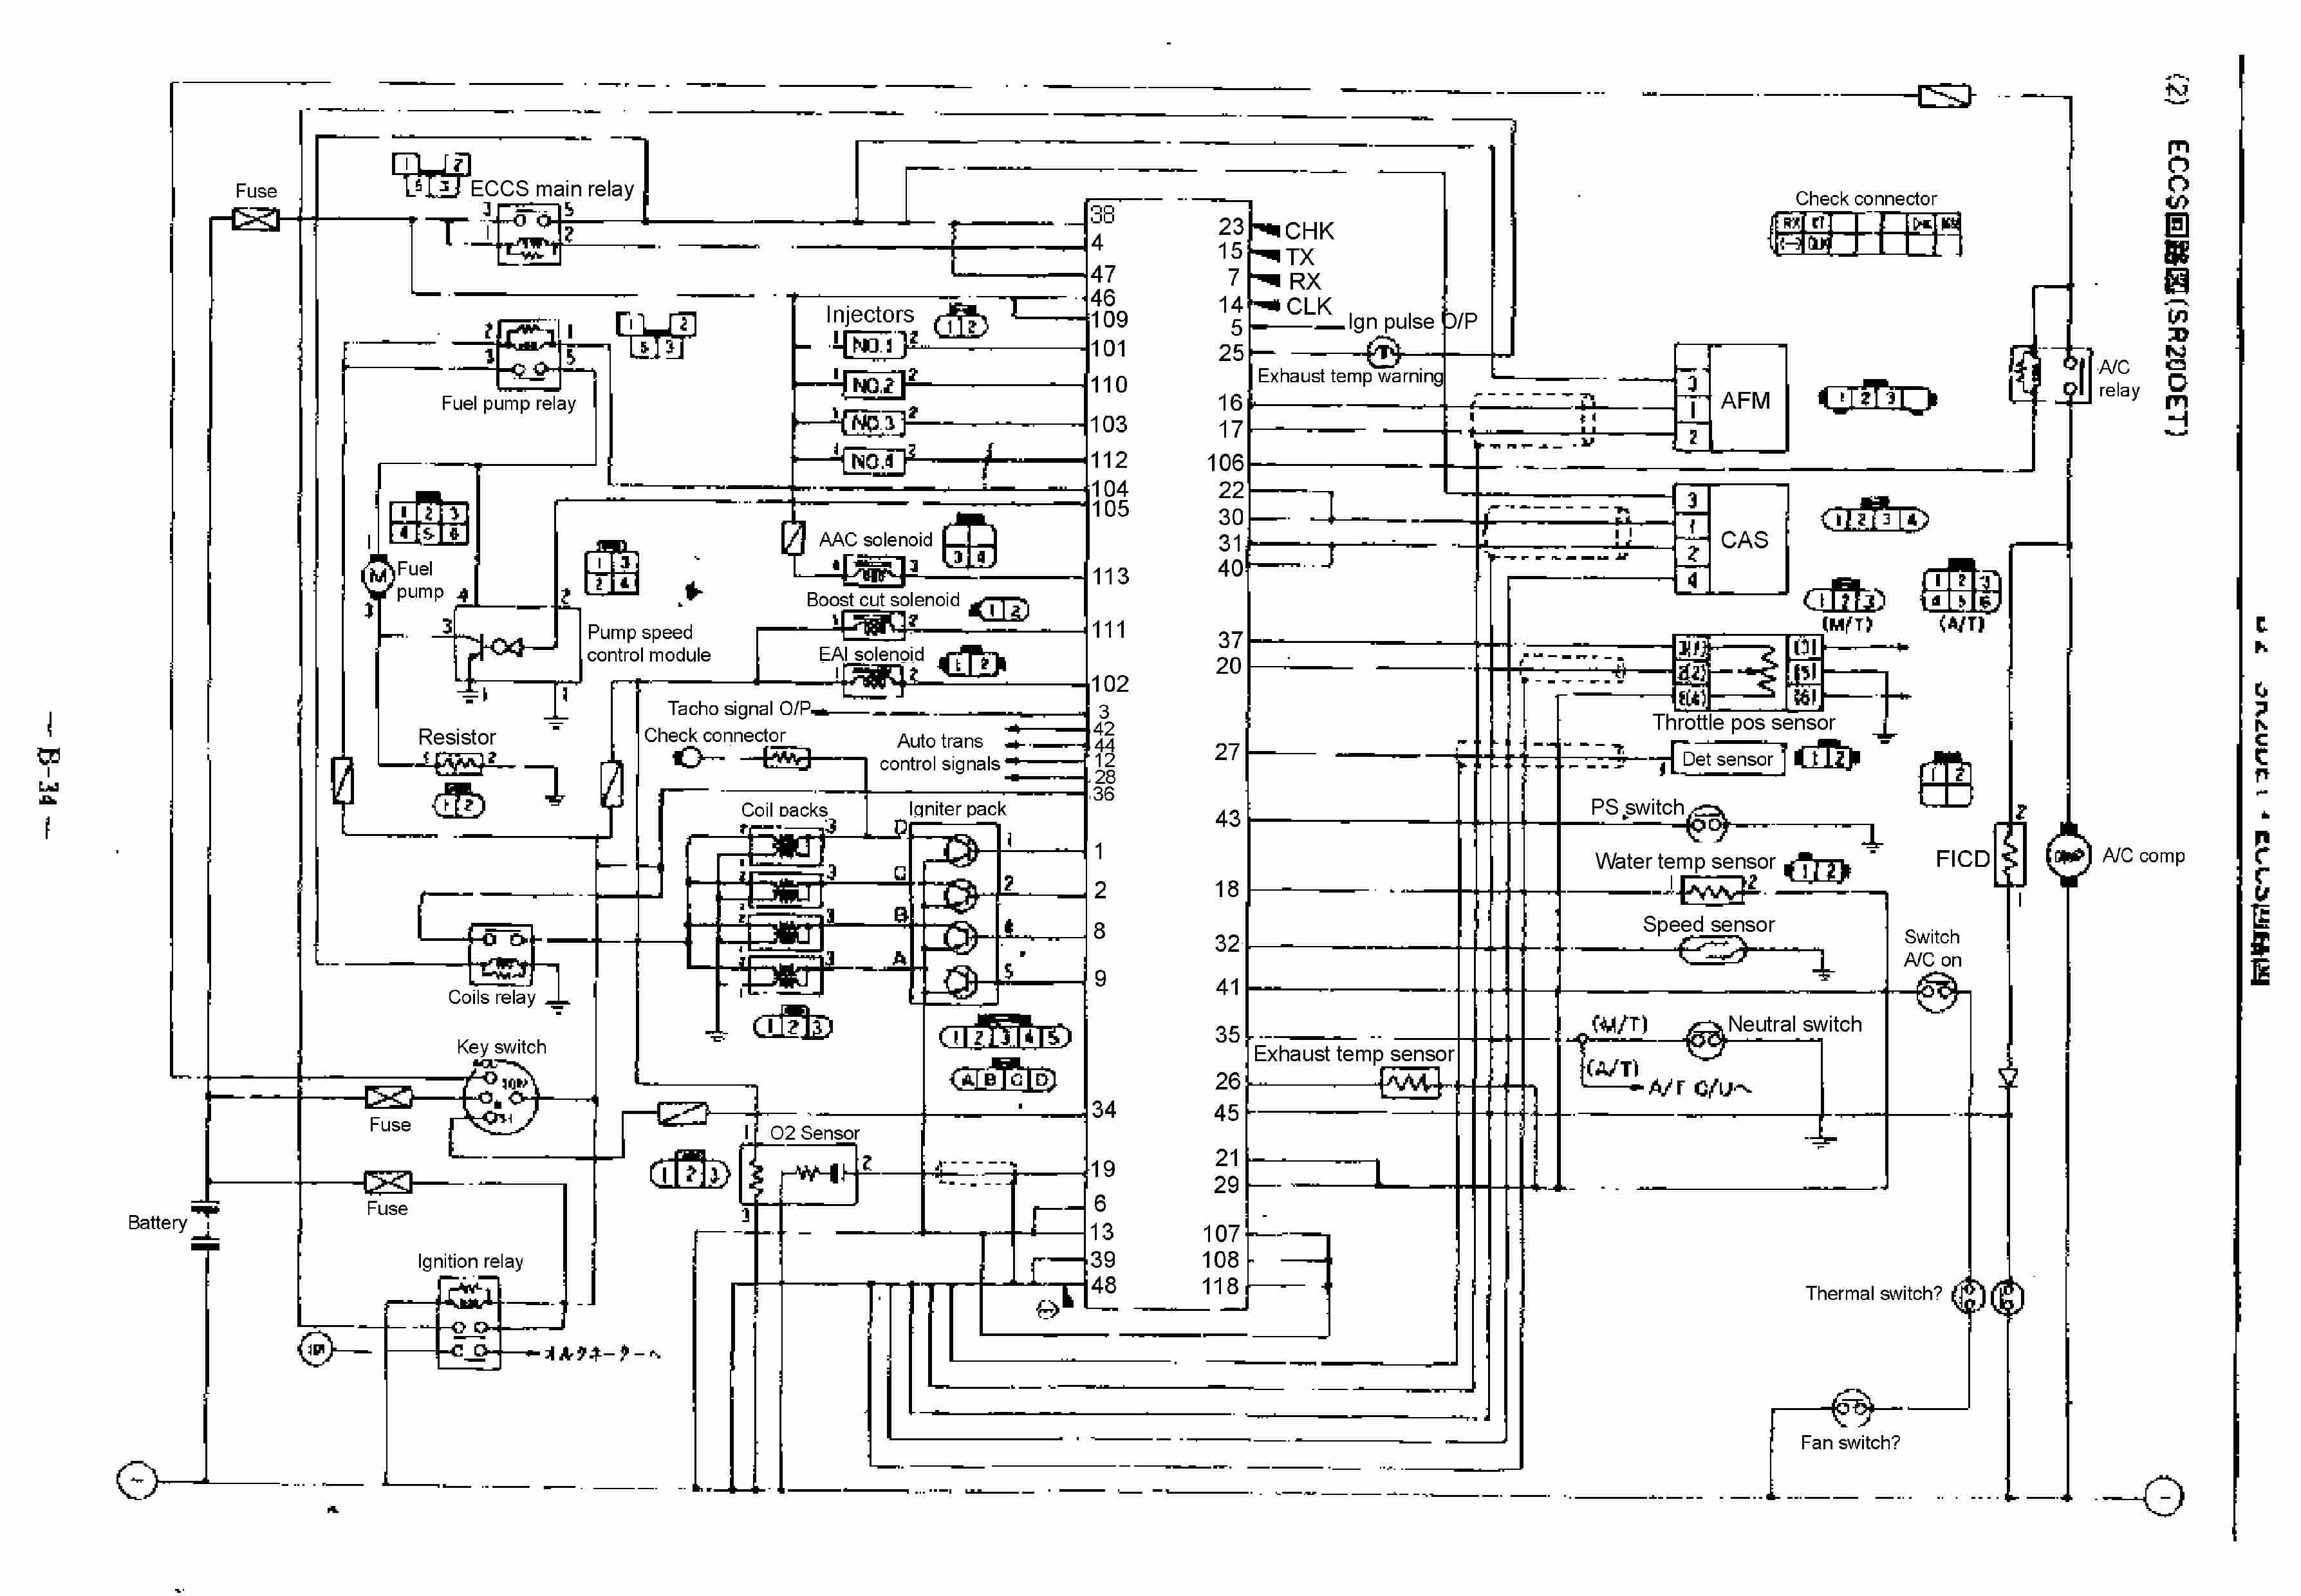 Px Automotive Alternator together with Nissan Xterra Radio Wiring Diagram Wheretobe Of Nissan Xterra Stereo Wiring Diagram likewise Nissan Titan Wiring Diagram Trailer Wiring Diagram Nissan Titan Best Nissan Titan Trailer Wiring Diagram In D Within Hitch K in addition Nissan Frontier Service Bulletin likewise Toyota Sienna Cenral Junction Fuse Box Diagram. on nissan frontier wiring diagram download